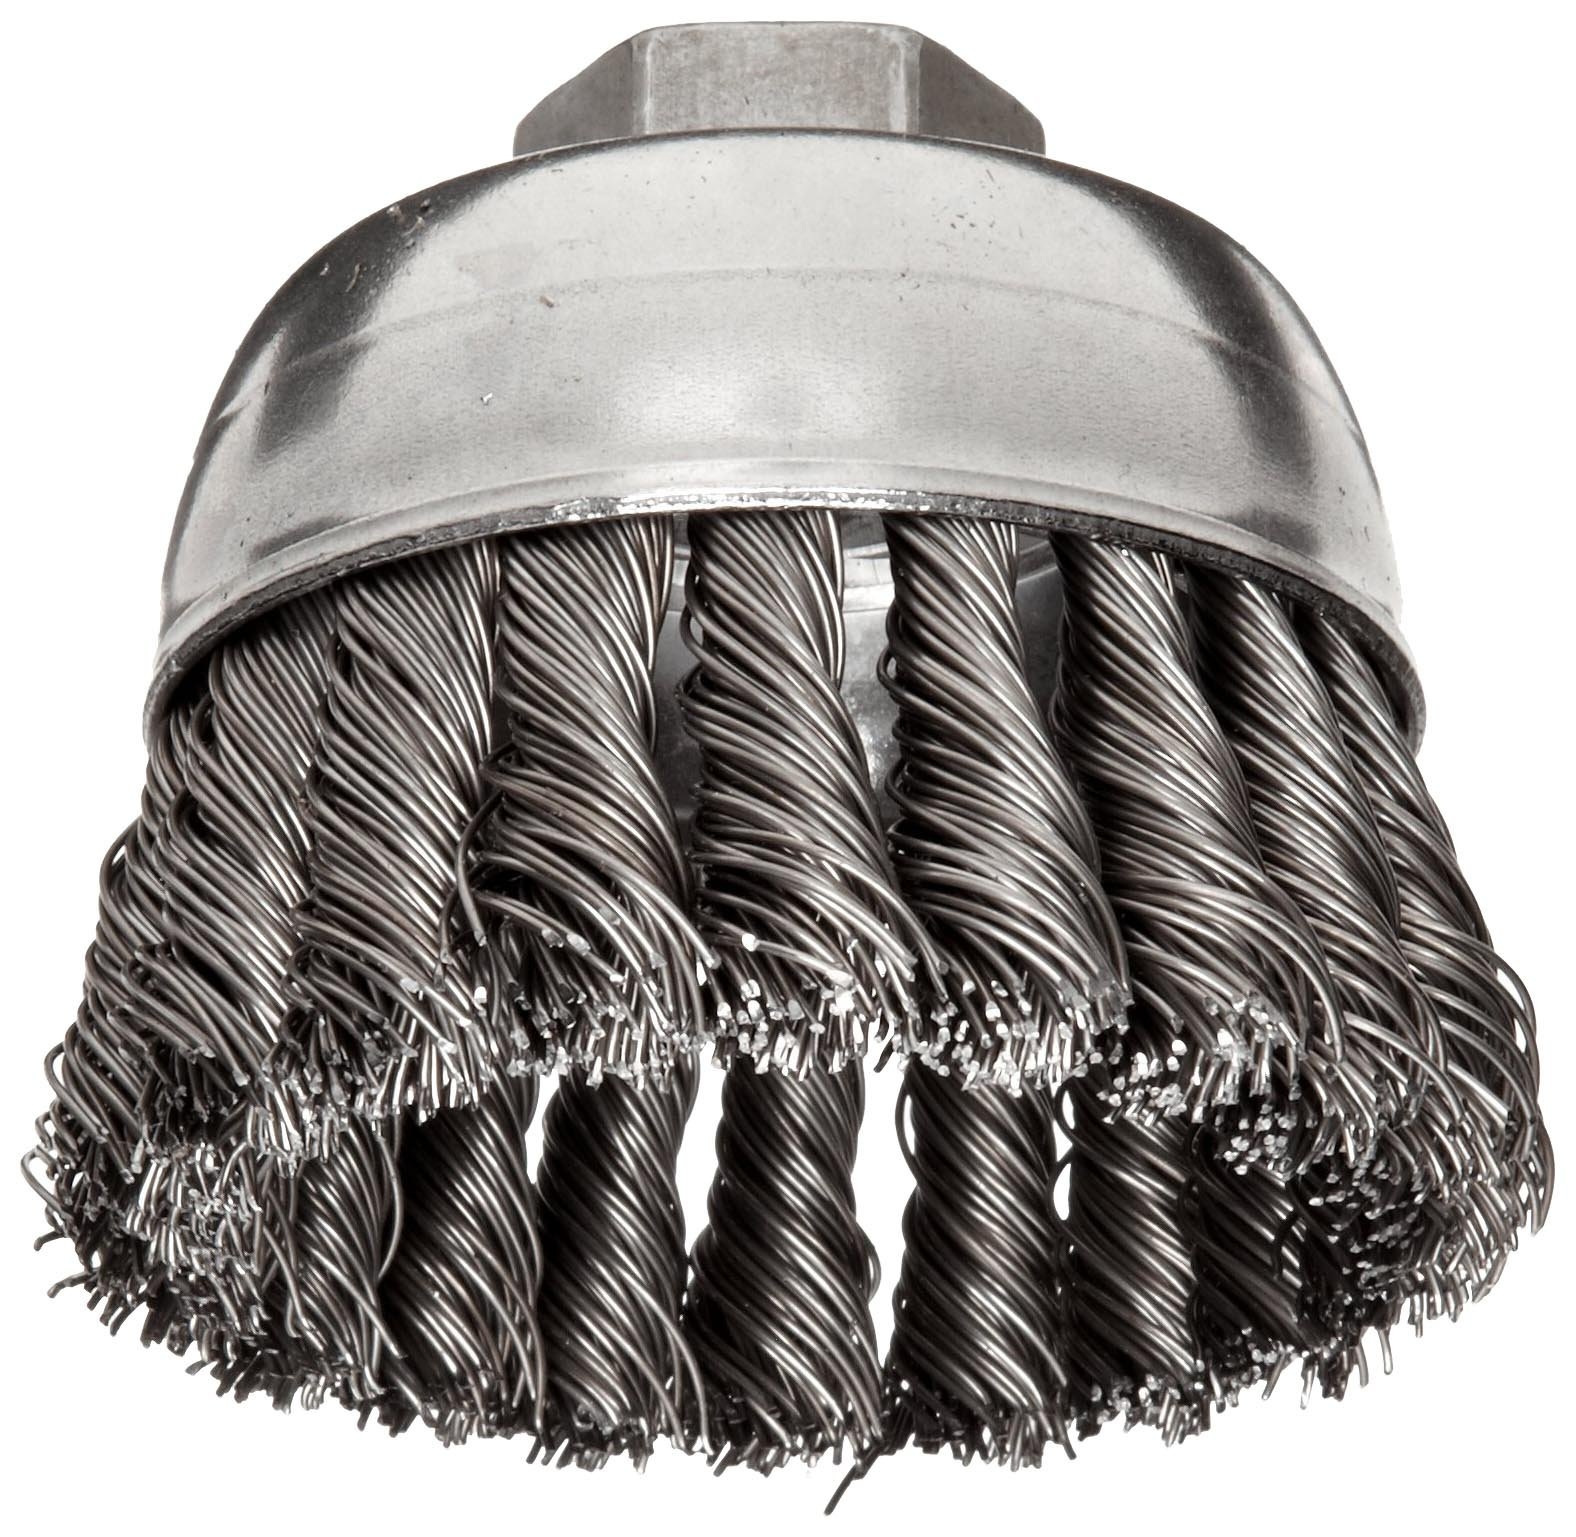 Weiler Wire Cup Brush, Threaded Hole, Steel, Partial Twist Knotted, Single Row, 2-3/4'' Diameter, 0.02'' Wire Diameter, 5/8''-11 Arbor, 1'' Bristle Length, 14000 rpm (Pack of 1) by Weiler